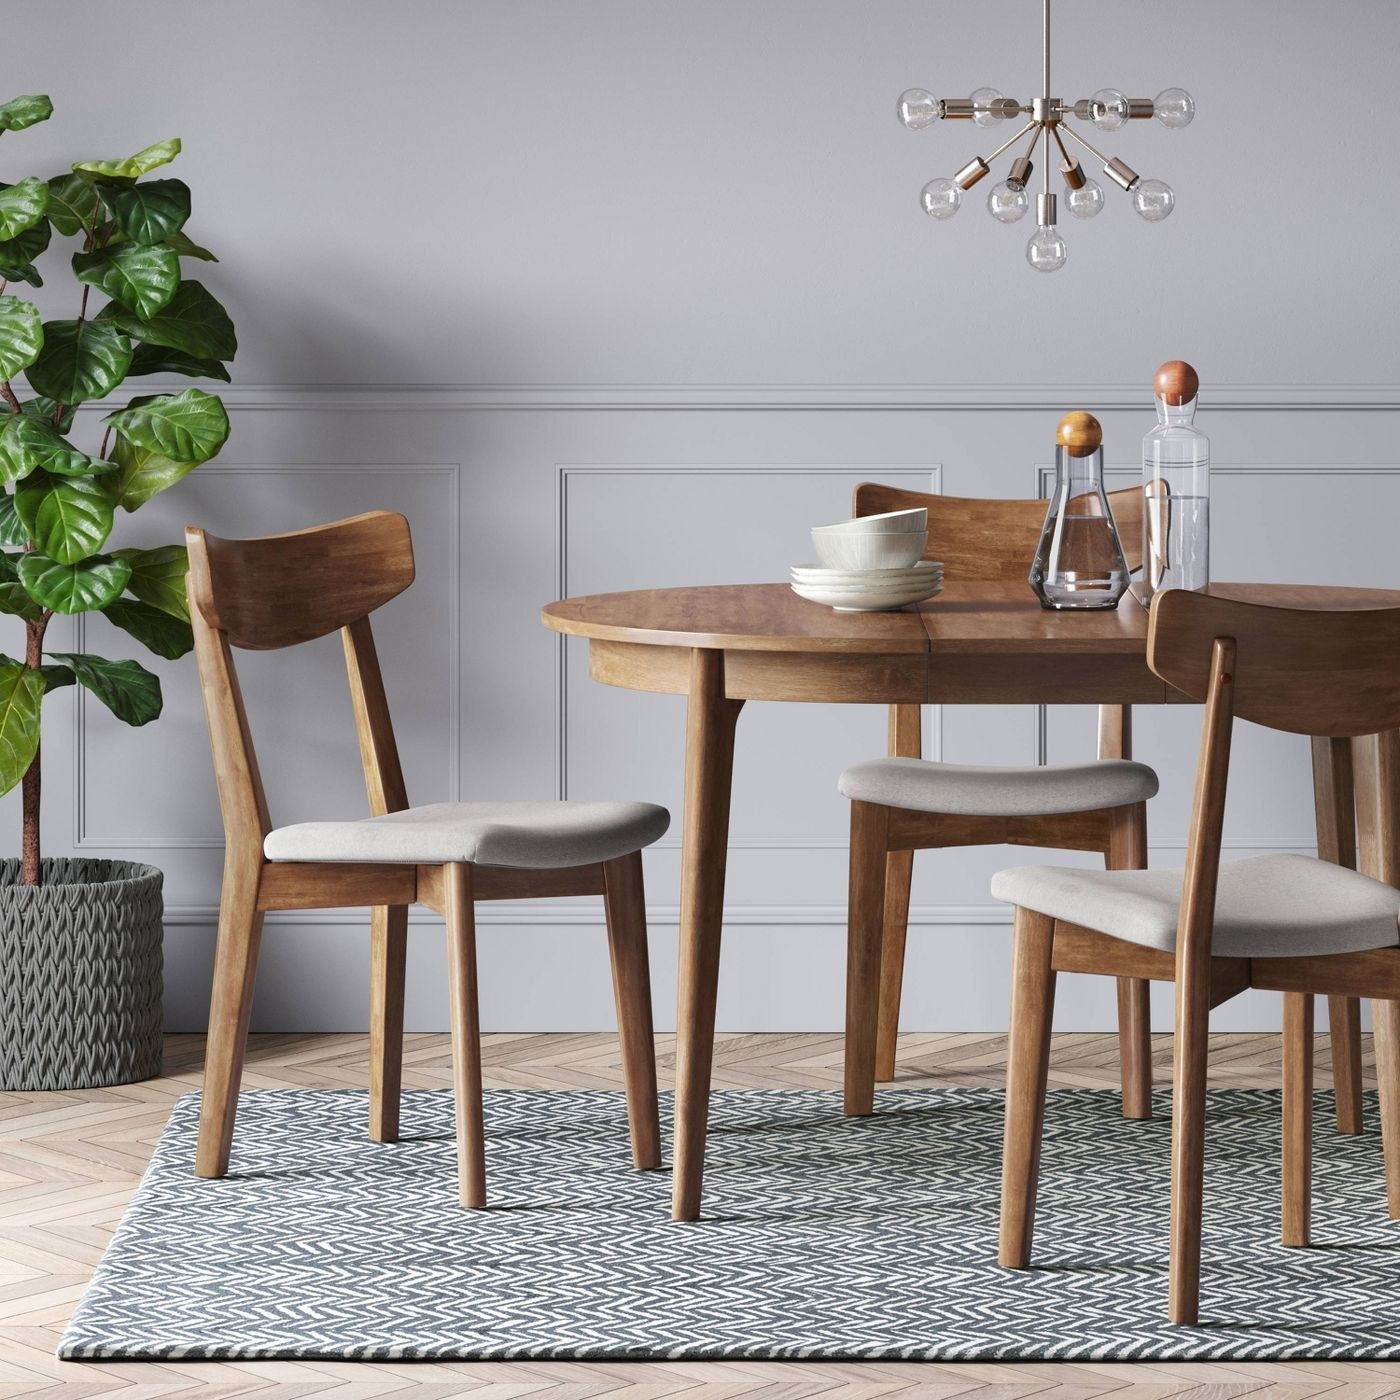 wood rounded dining table with chairs around it